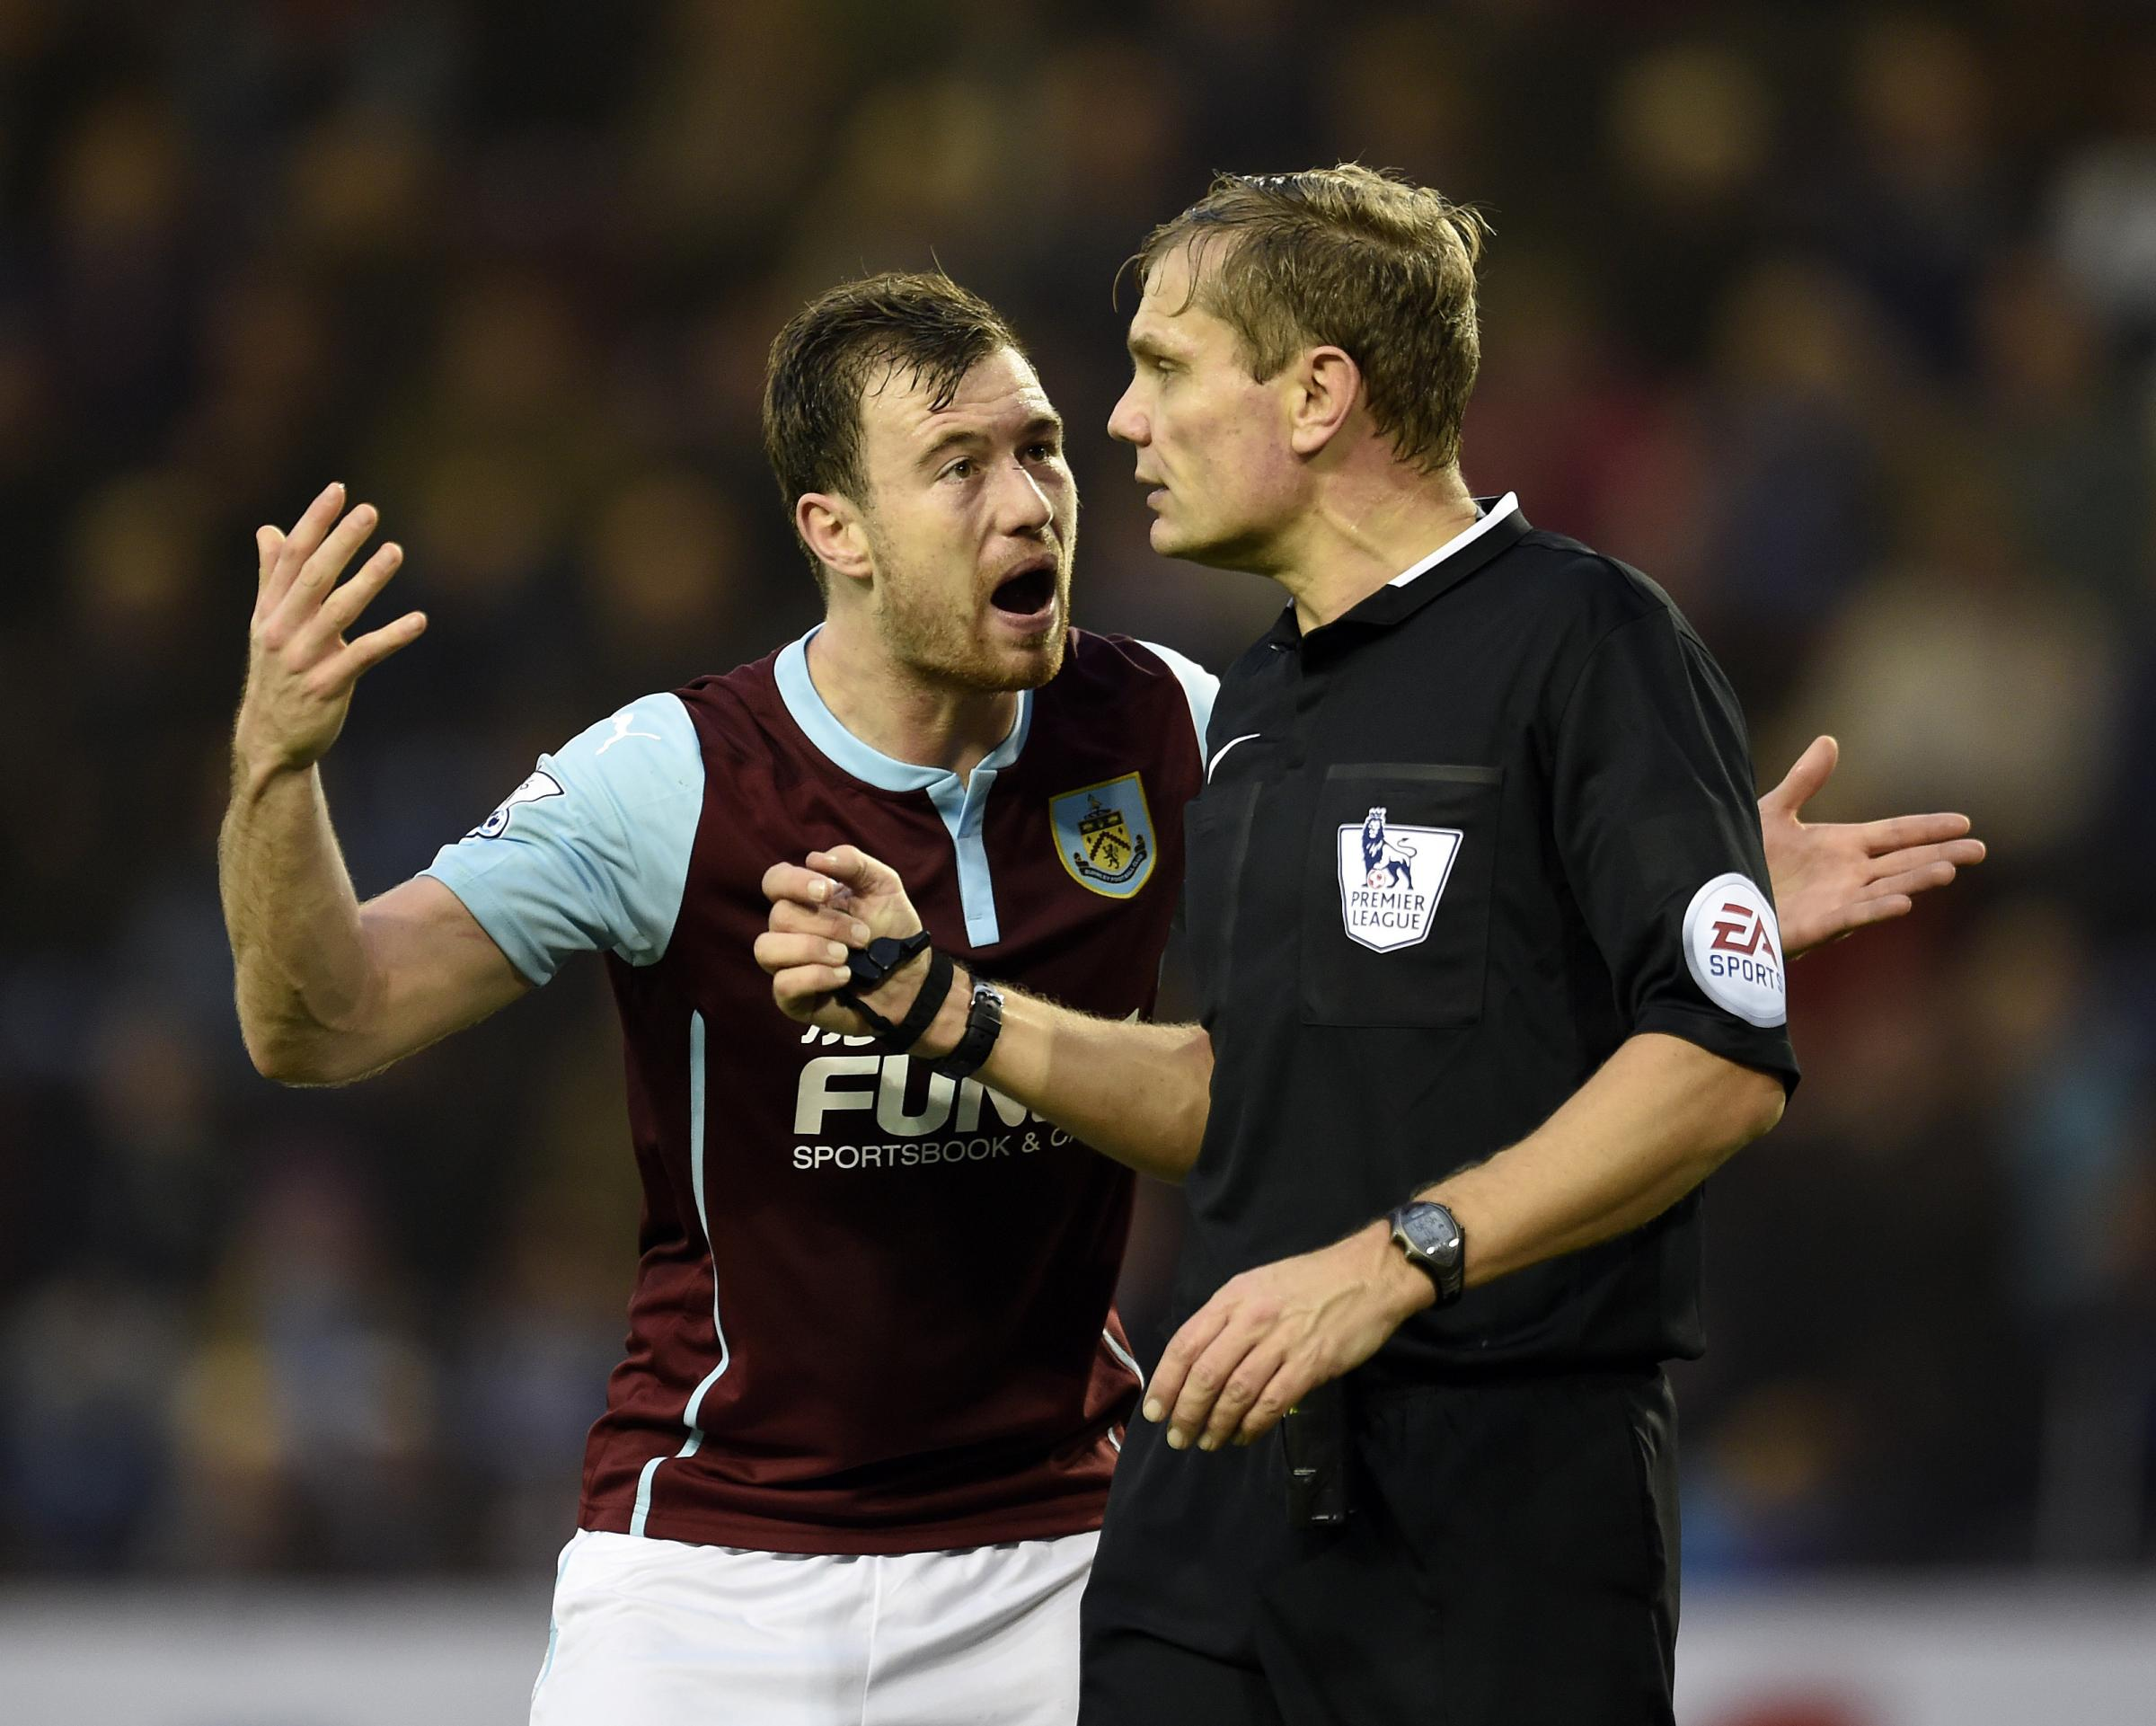 Burnley's Ashley Barnes argues with referee Graham Scott after being shown a yellow card in the game against Aston Villa last season. The match was Scott's first in the top flight